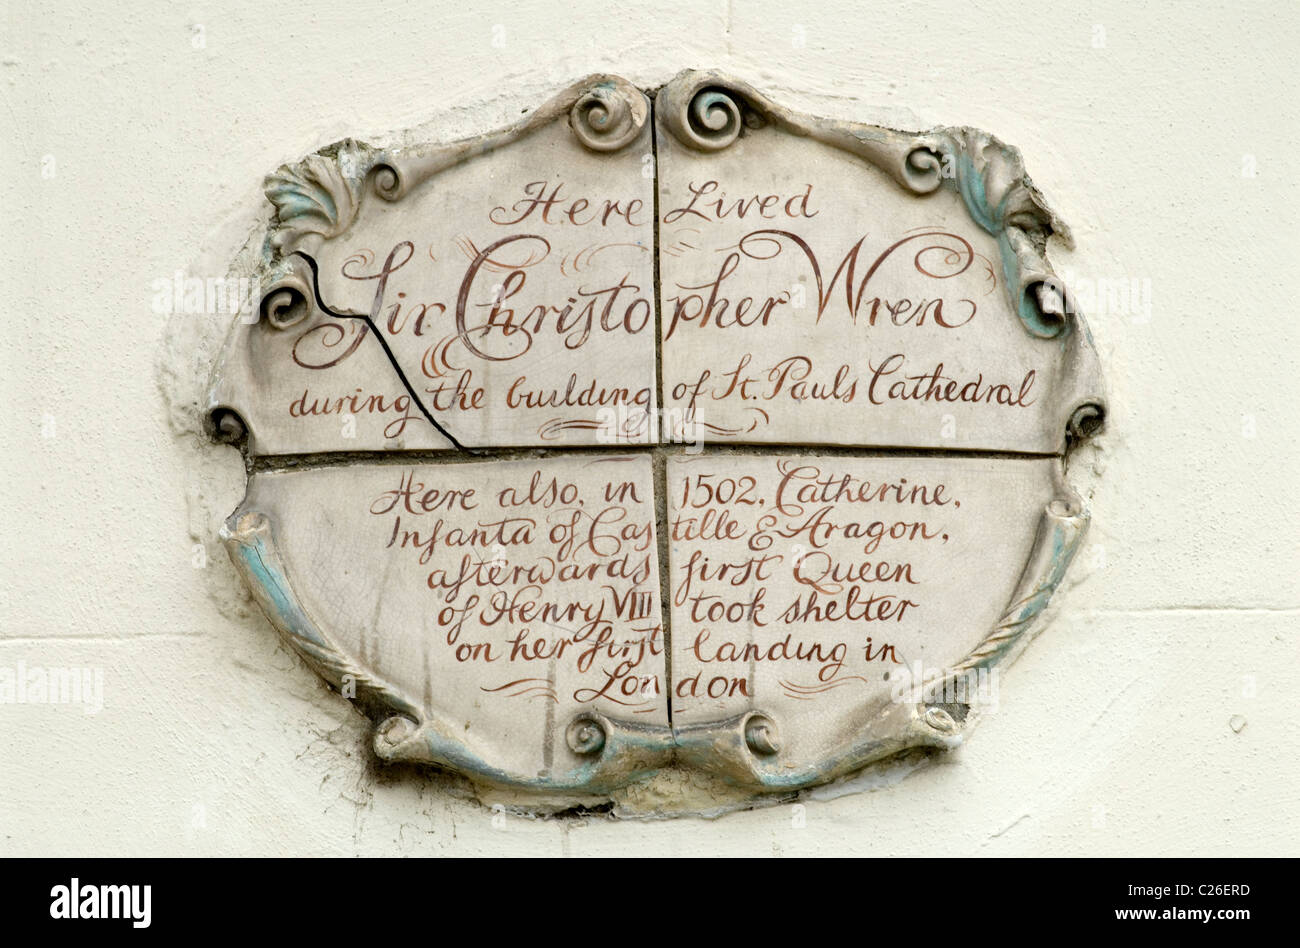 Sir Christopher Wren Plaque above doorway house in Bankside Southwark London SE1 while building St Pauls Cathedral - Stock Image